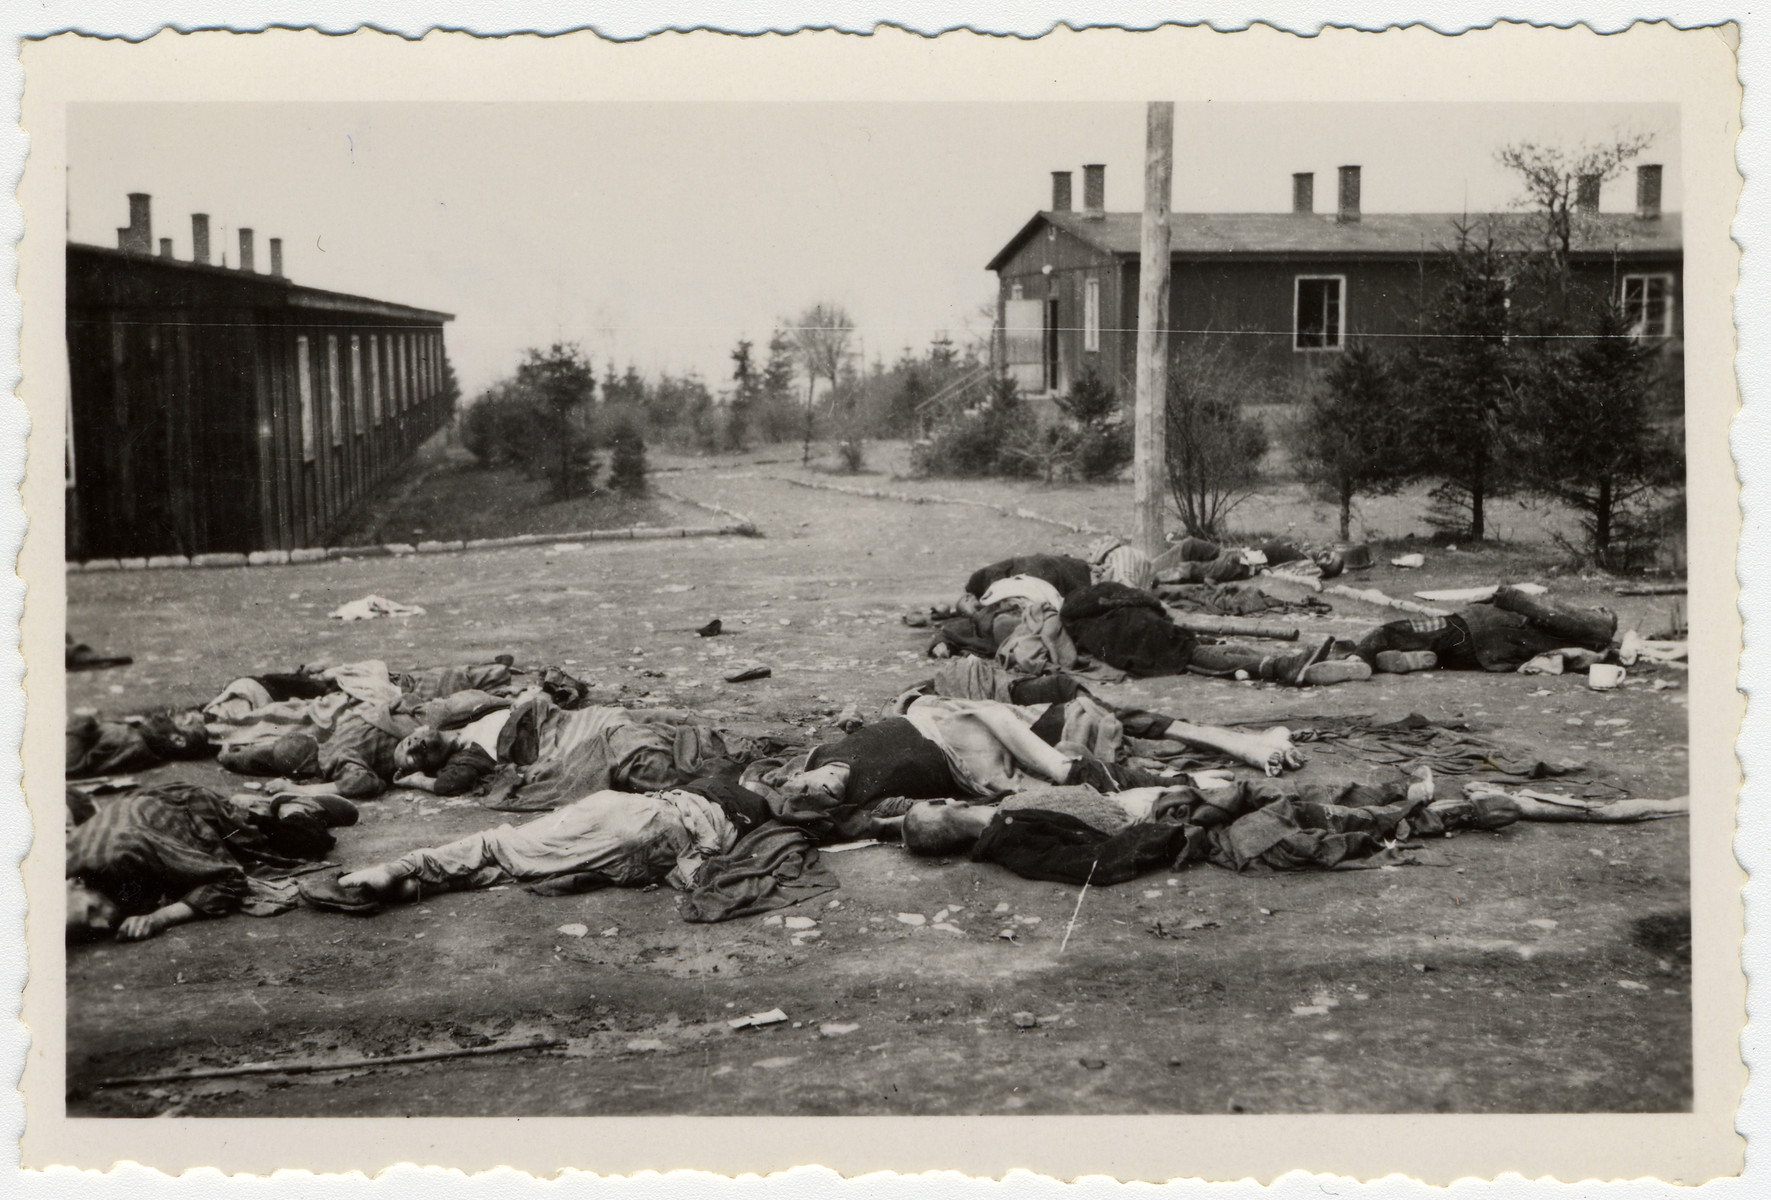 Corpses lie strewn about in the street of the Buchenwald concentration camp following liberation.